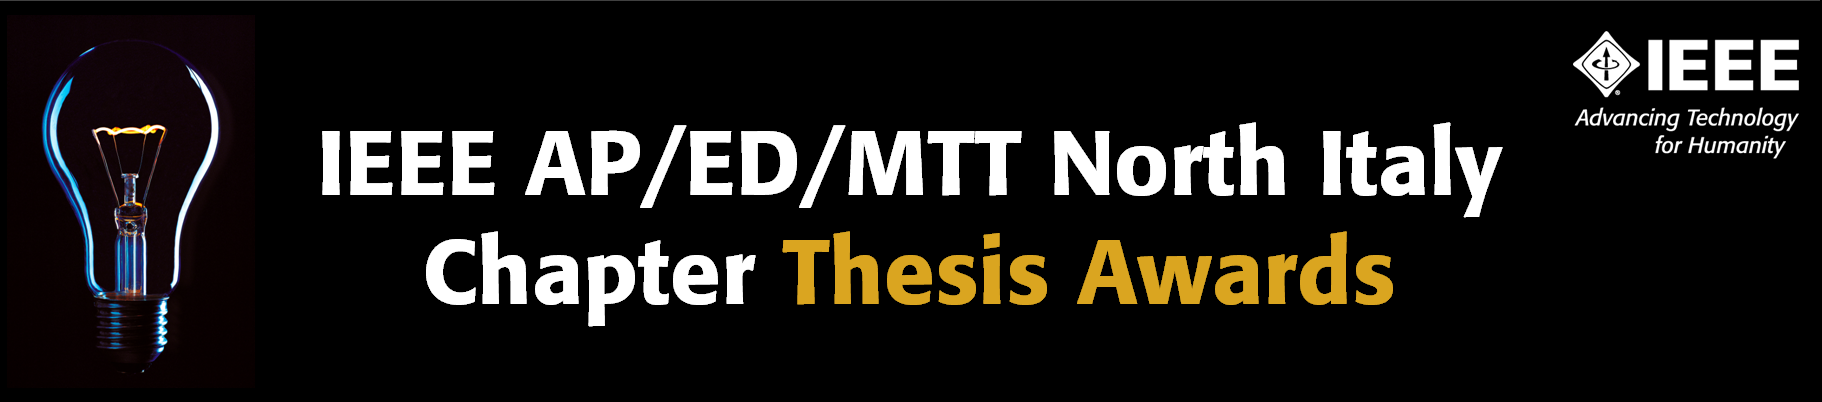 IEEE AP/ED/MTT North Italy Chapter Thesis Awards Announced